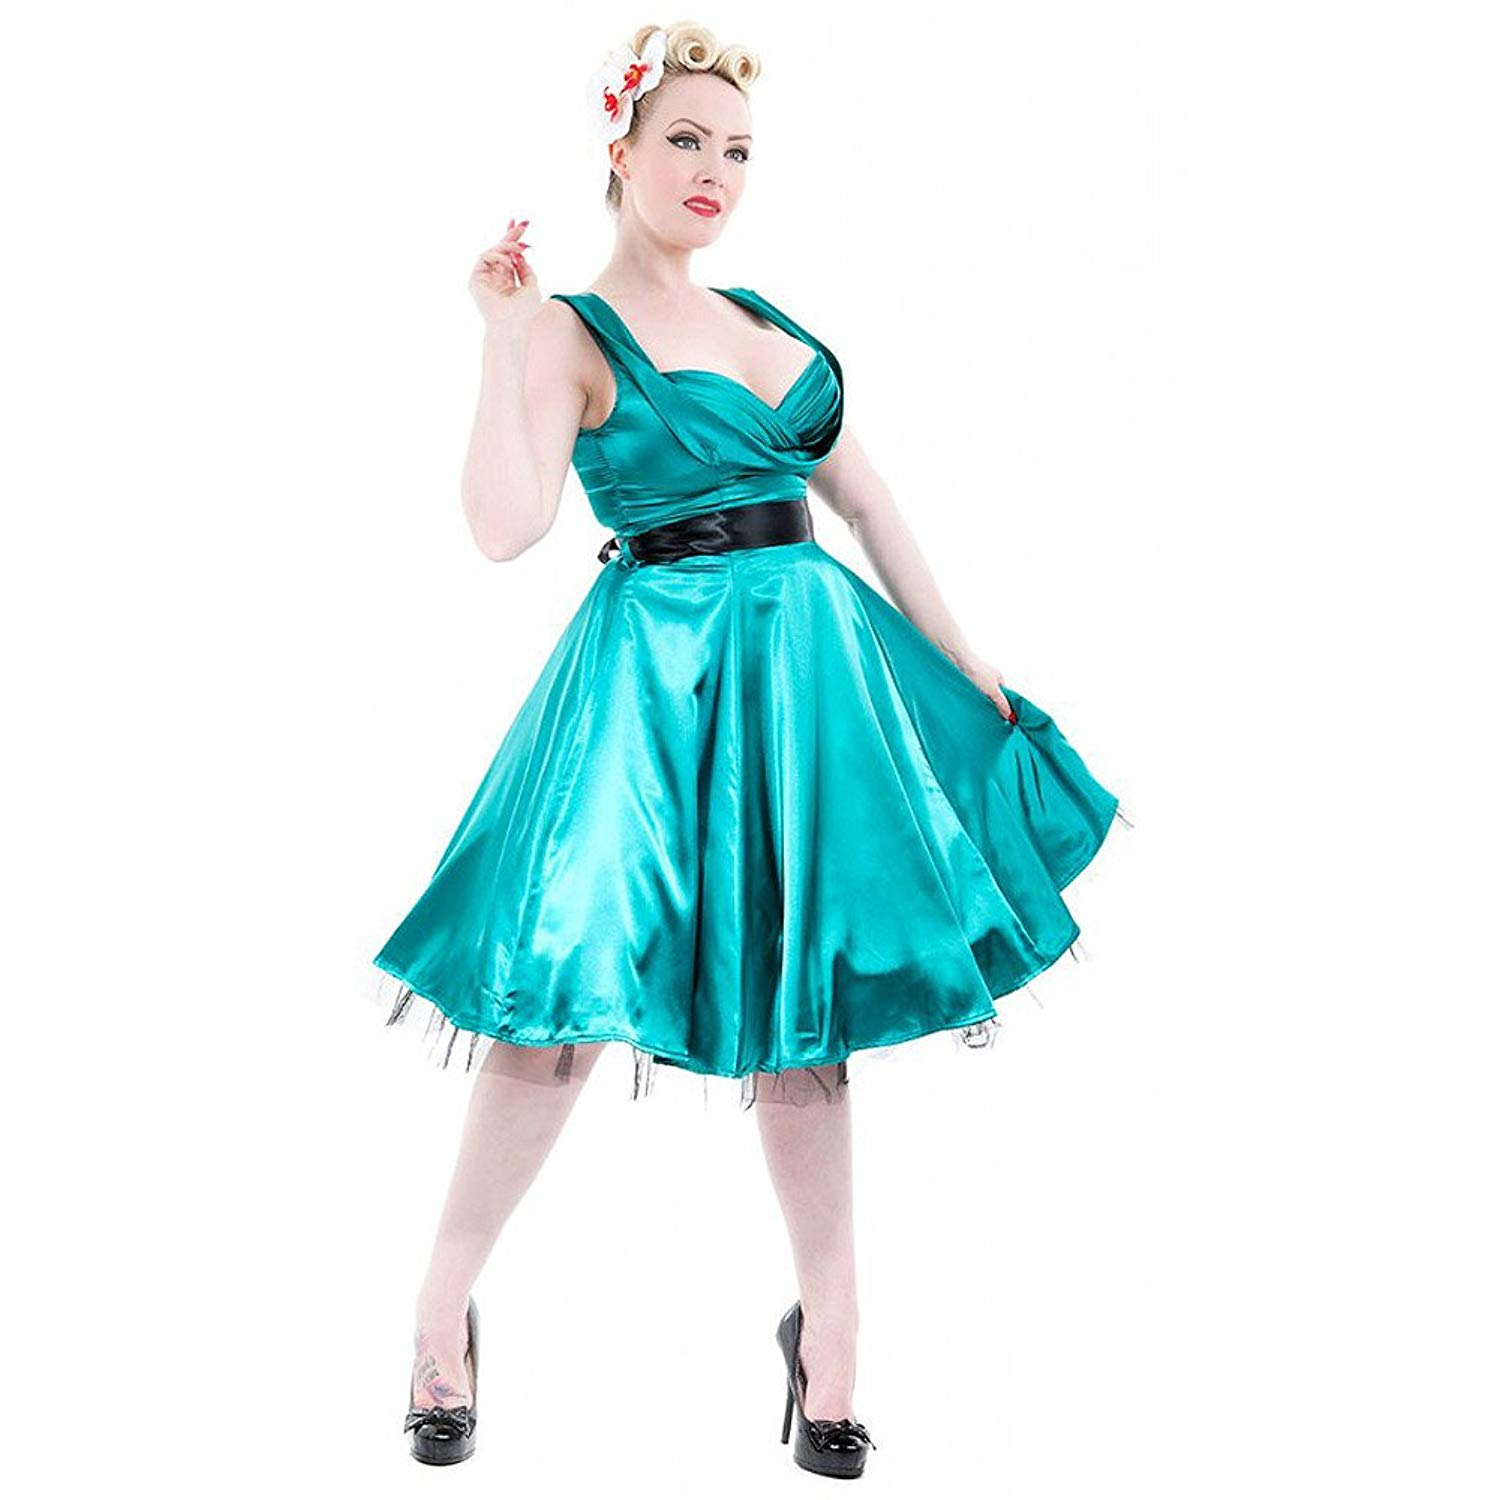 H & R London Satin 1950's Retro Cocktail Dress Teal Green